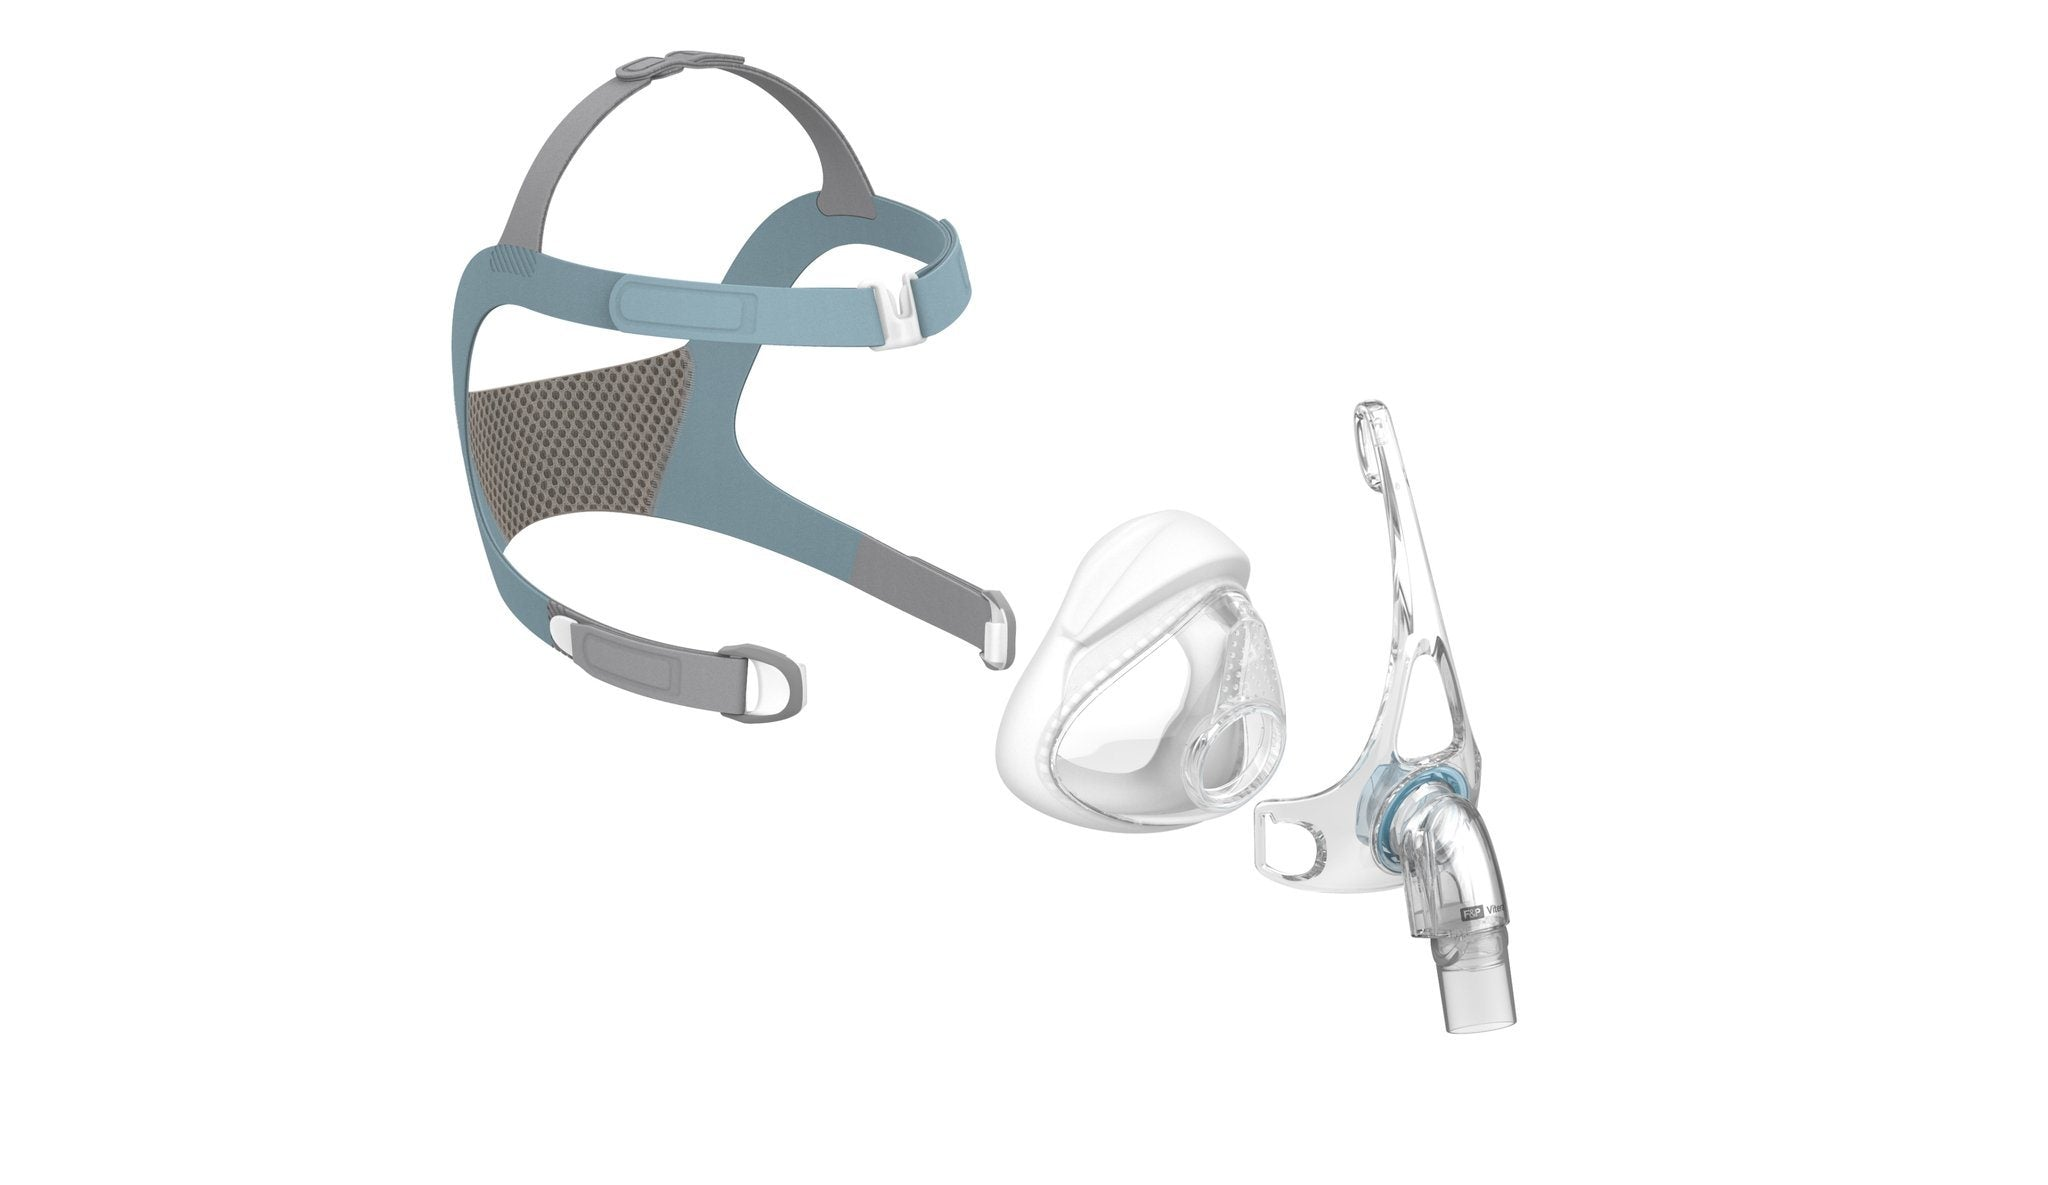 Fisher & Paykel Vitera Full Face Mask CPAP Masks Fisher & Paykel